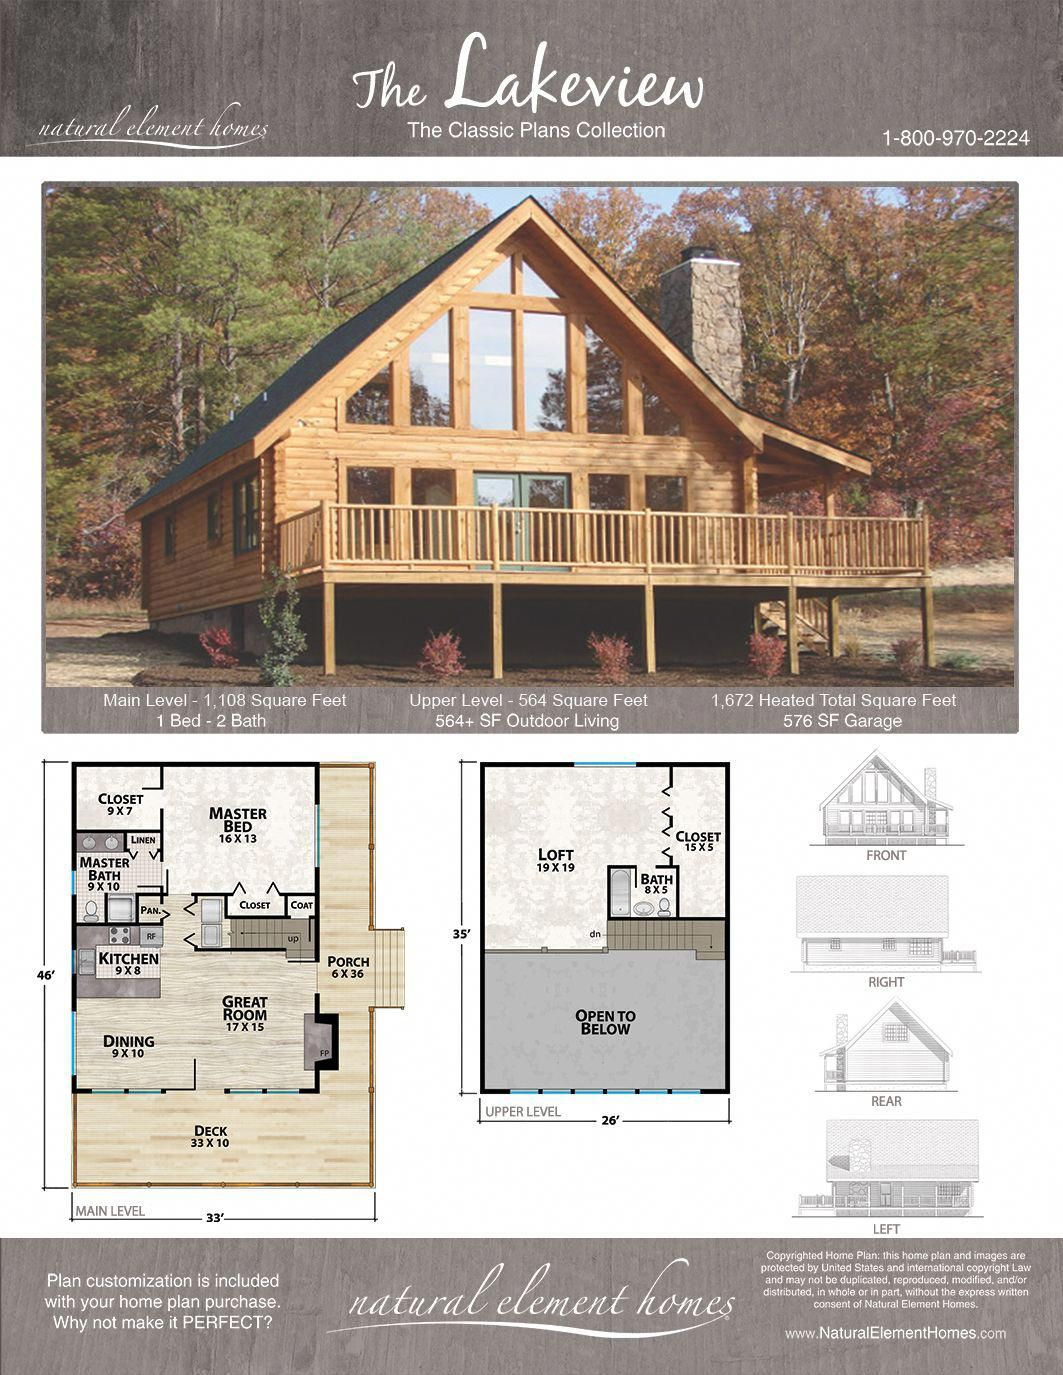 Lakeview Natural Element Homes Log Homes Aframecabin Lake House Plans Mountain House Plans Cabin House Plans